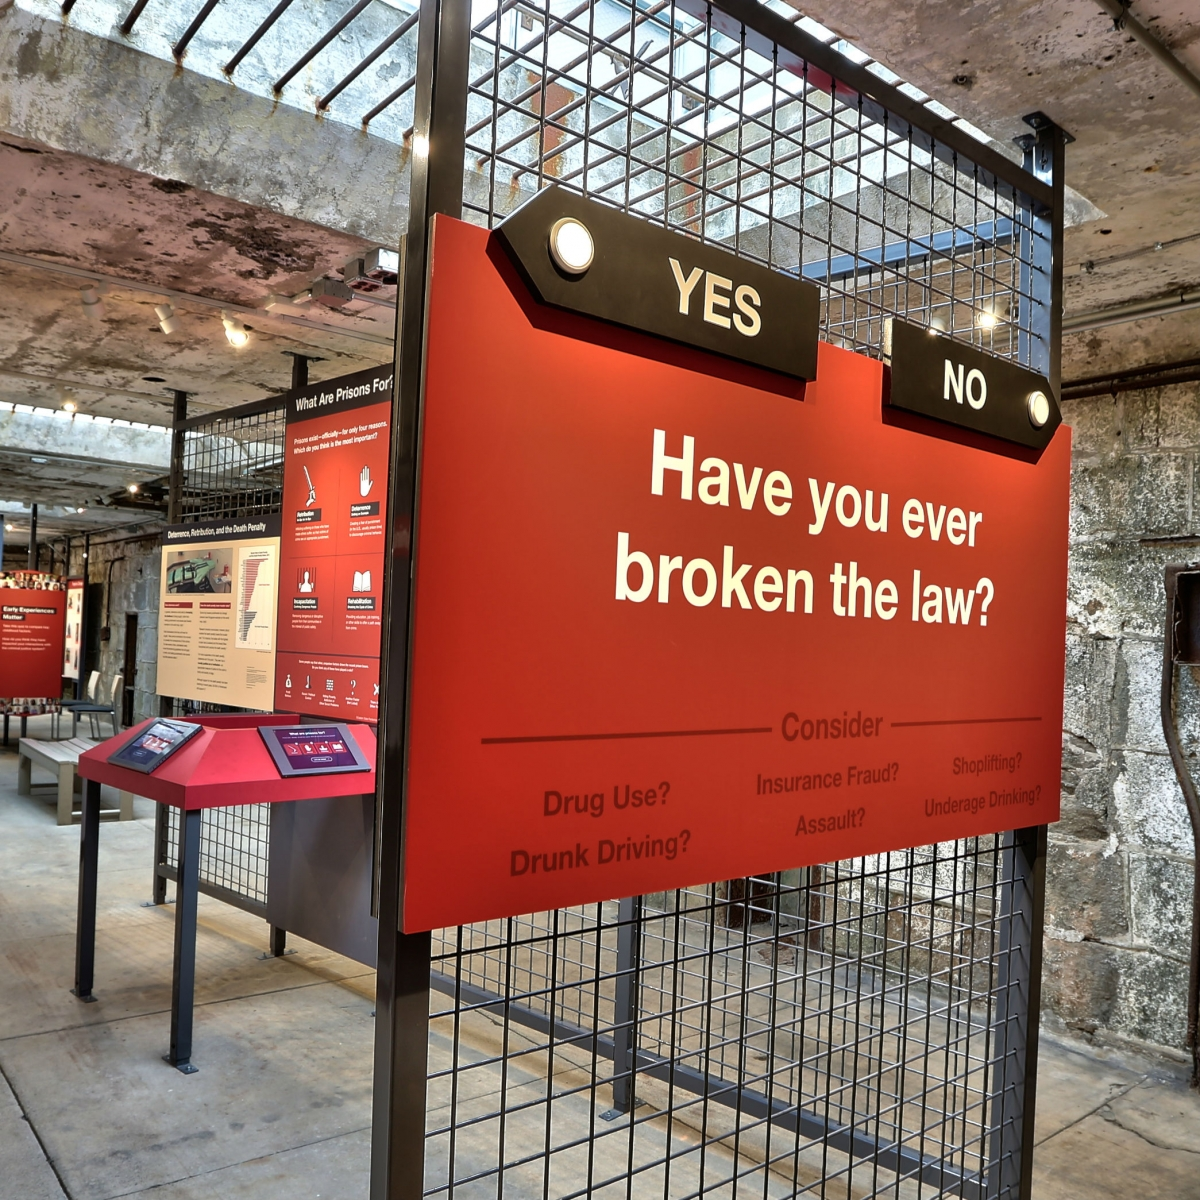 Prisons Today invites visitors to contemplate their relationship to the criminal justice system, asking them upon entrance to the exhibit: Have you ever broken the law? Visitors can leave a confession at 'The Criminal Us' artist installation (far left) and contemplate penal philosophy at the 'What Are Prisons For?' iPad interactive (middle left). Questions throughout the exhibit—such as 'Why are there so many Americans in prison?'—prompt contemplation on U.S. prisons, institutions often out of sight and out of mind.